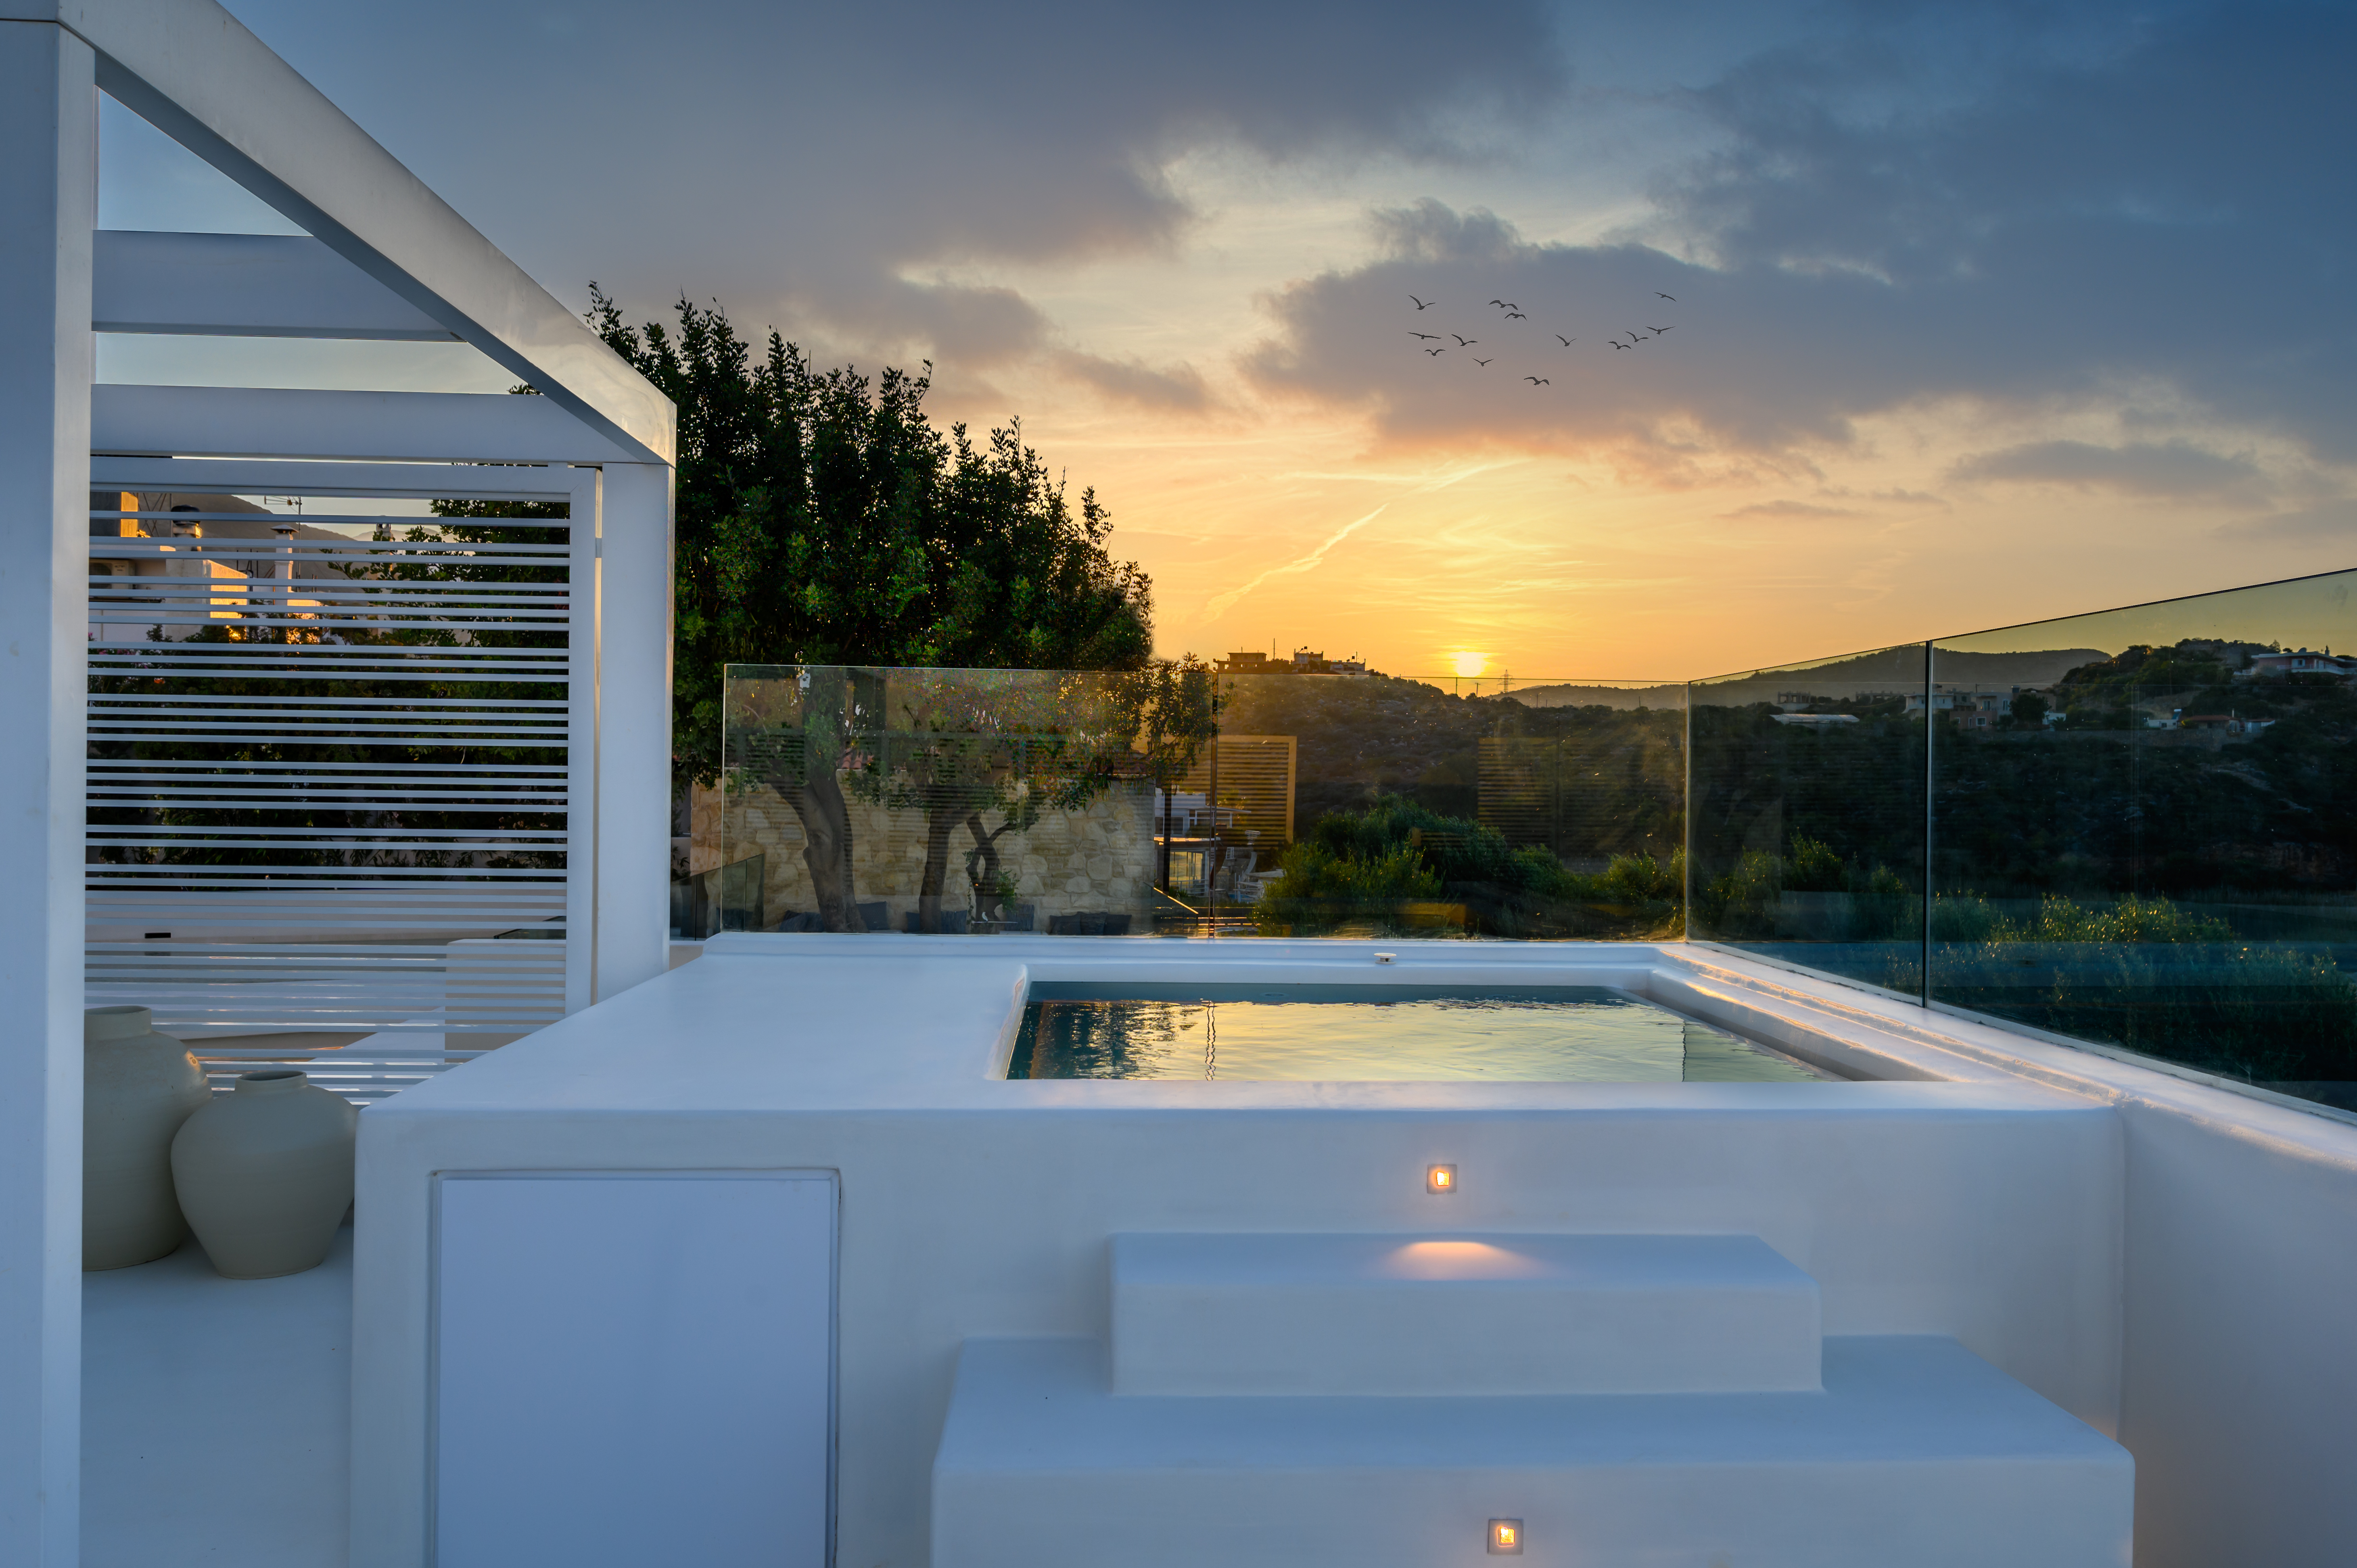 Aegean Rooms with outdoor Jacuzzi